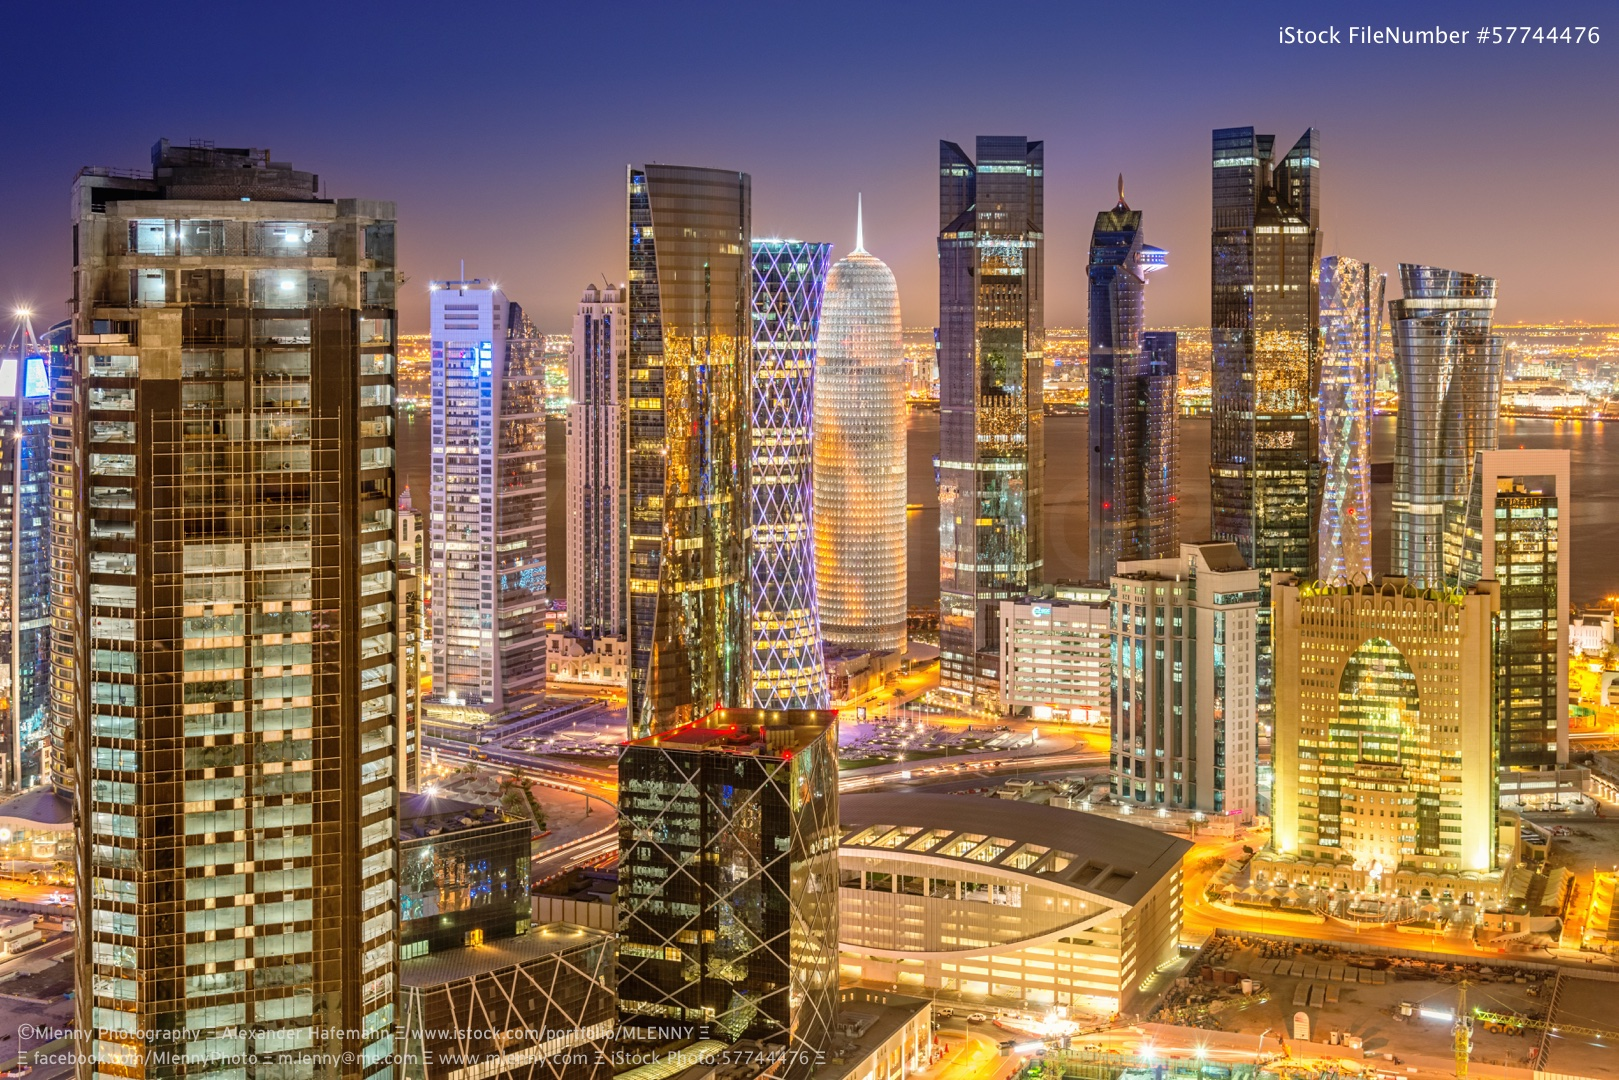 Doha at Night, Qatar